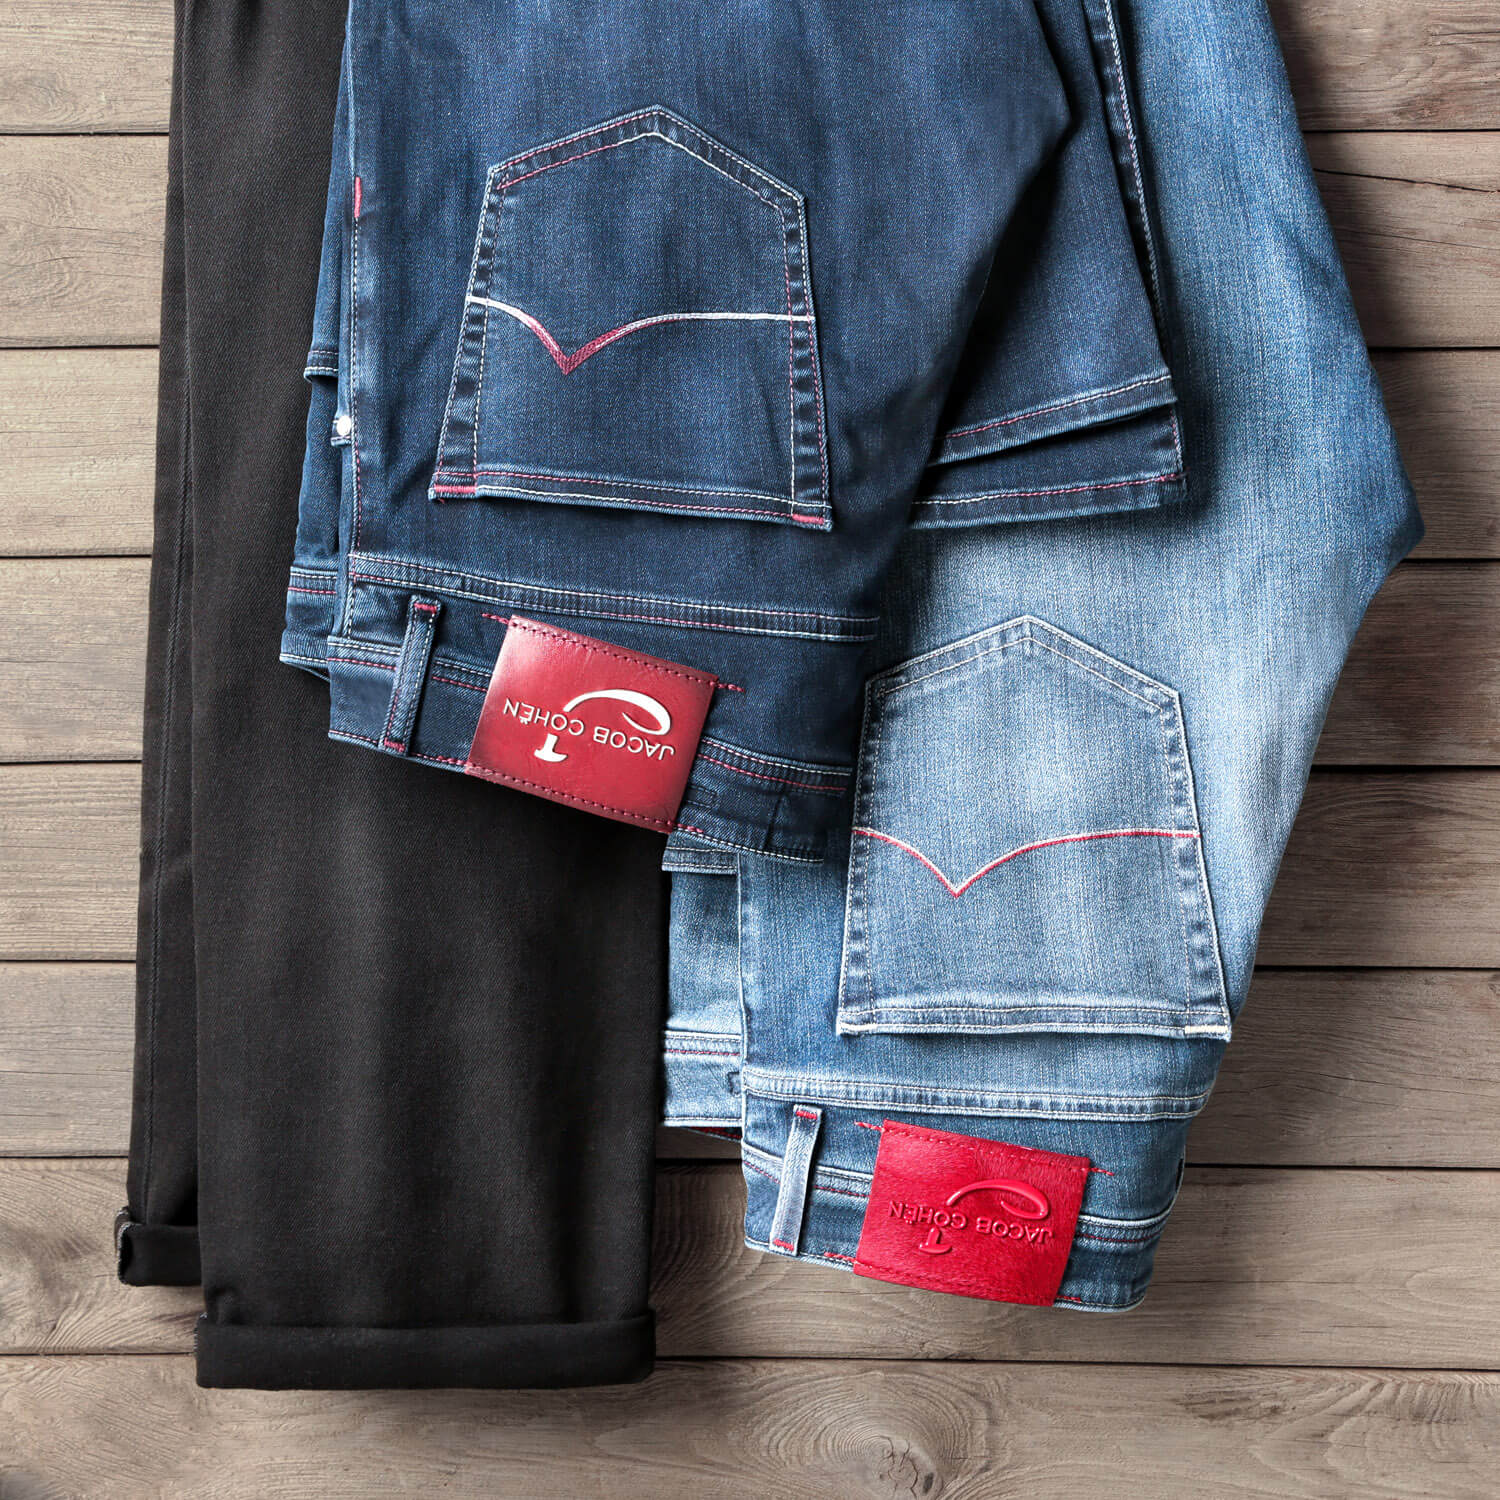 Jacob_Cohen_Flat_Lay_Jeans_Product_Photography